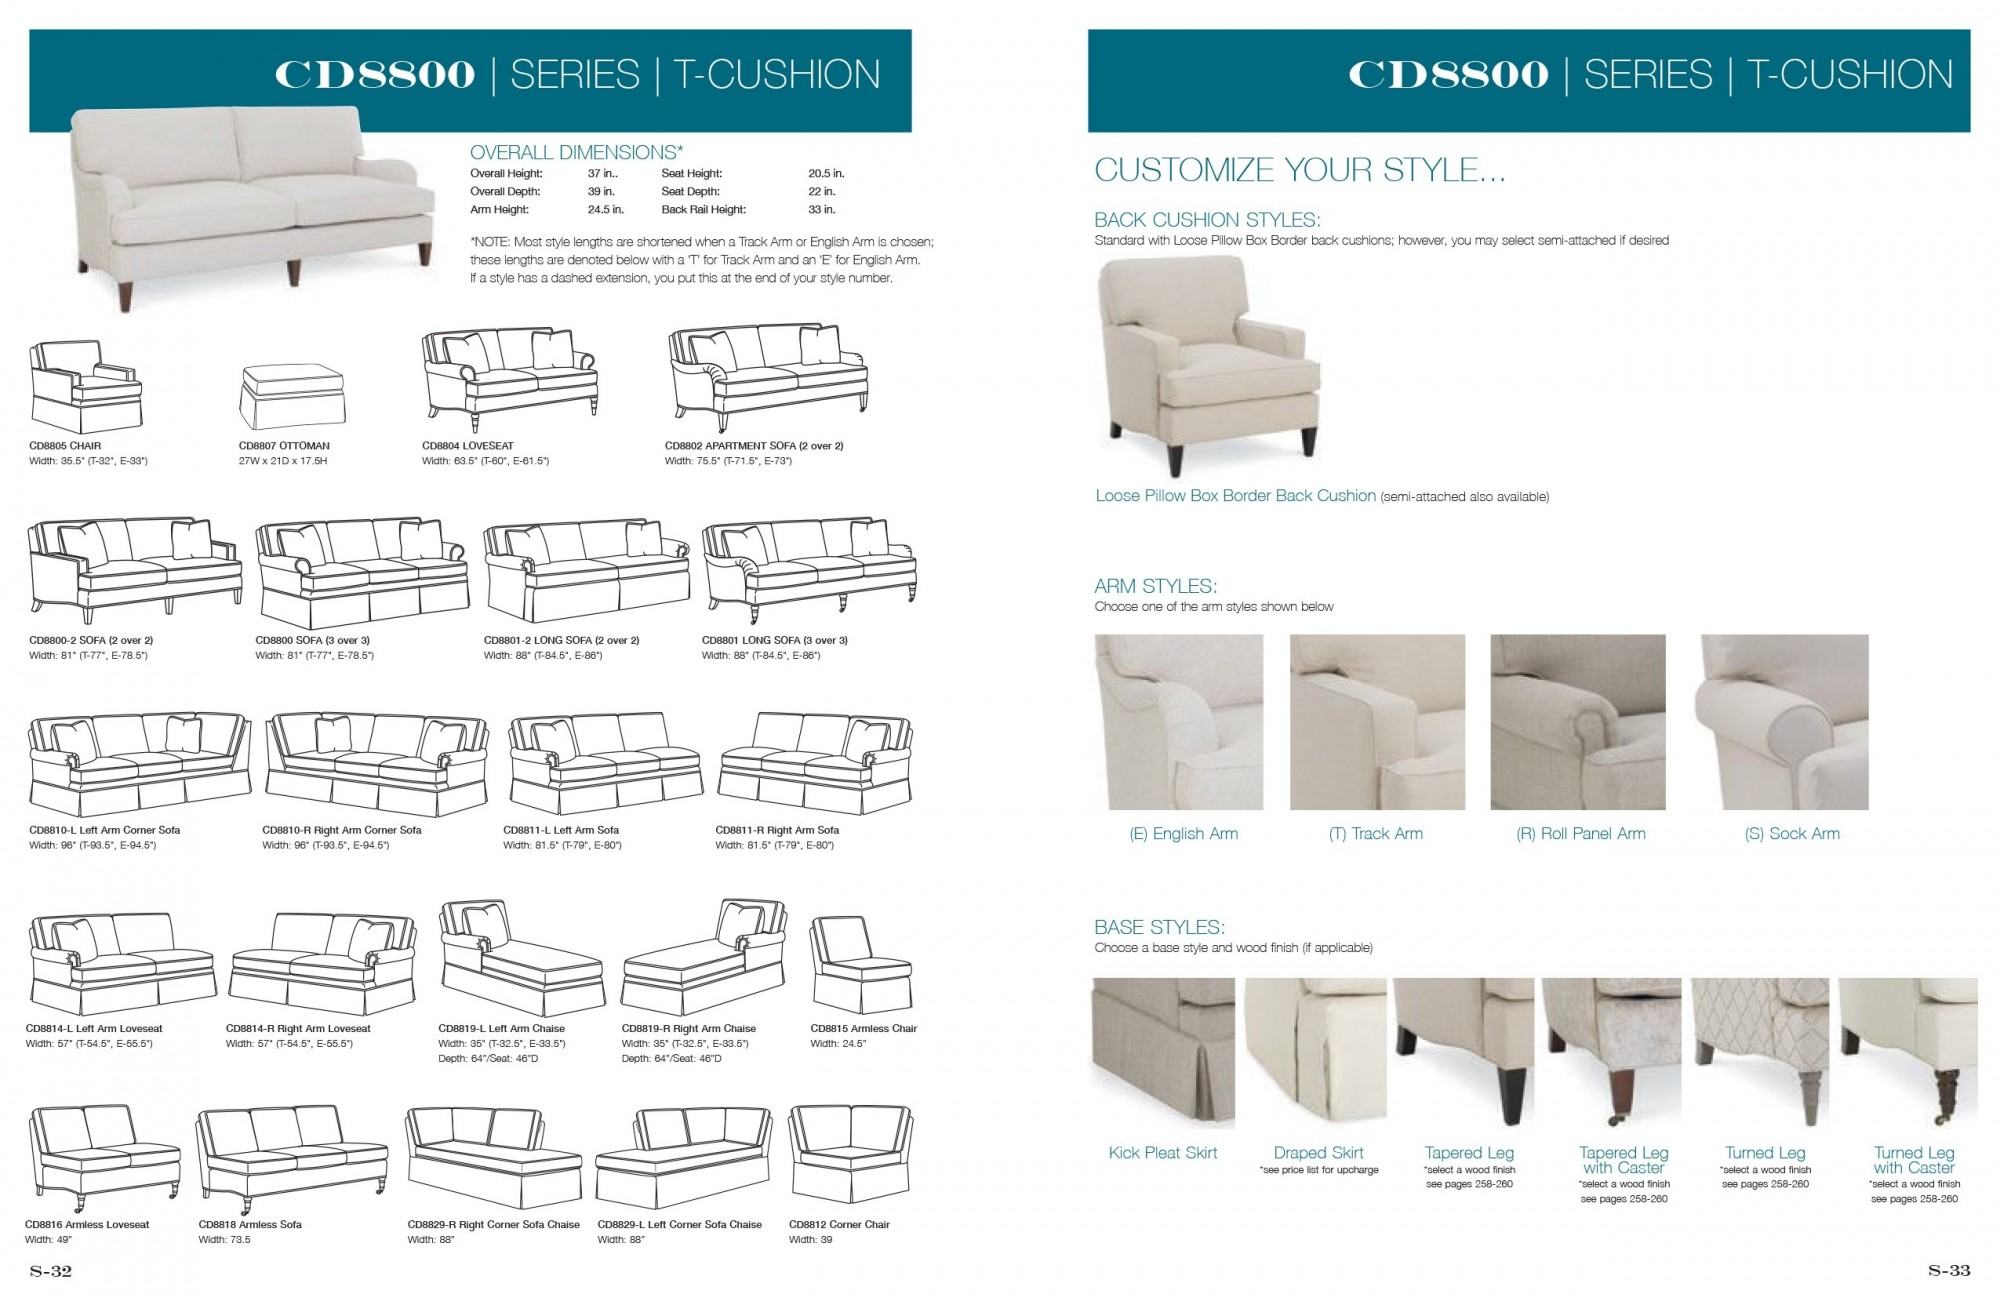 Dimensions: View All Sectional Dimensions